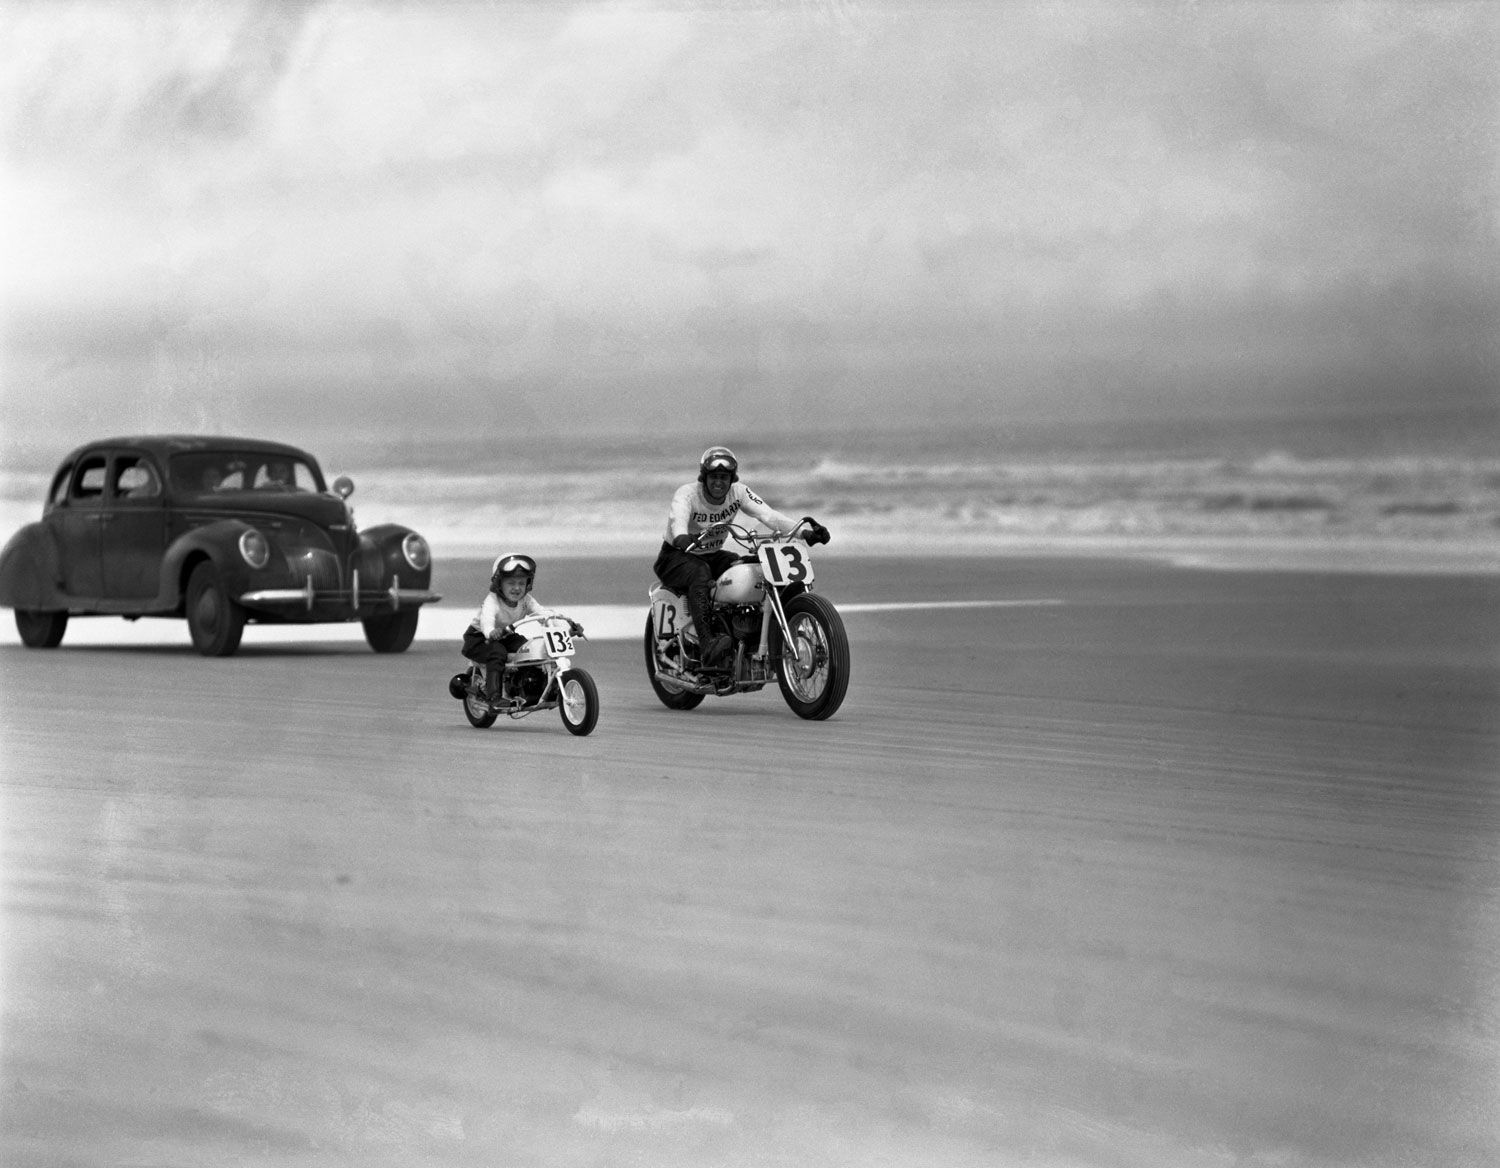 Joseph Scherschel—Time & Life Pictures/Getty Images  Unpublished. On matching full-size and miniature Indian motorcycles, a man and a boy ride along the beach, Daytona Beach, Florida, March 1948    Read more: http://life.time.com/culture/daytona-motorcycle-madness-1948/#ixzz1pq47OIvF